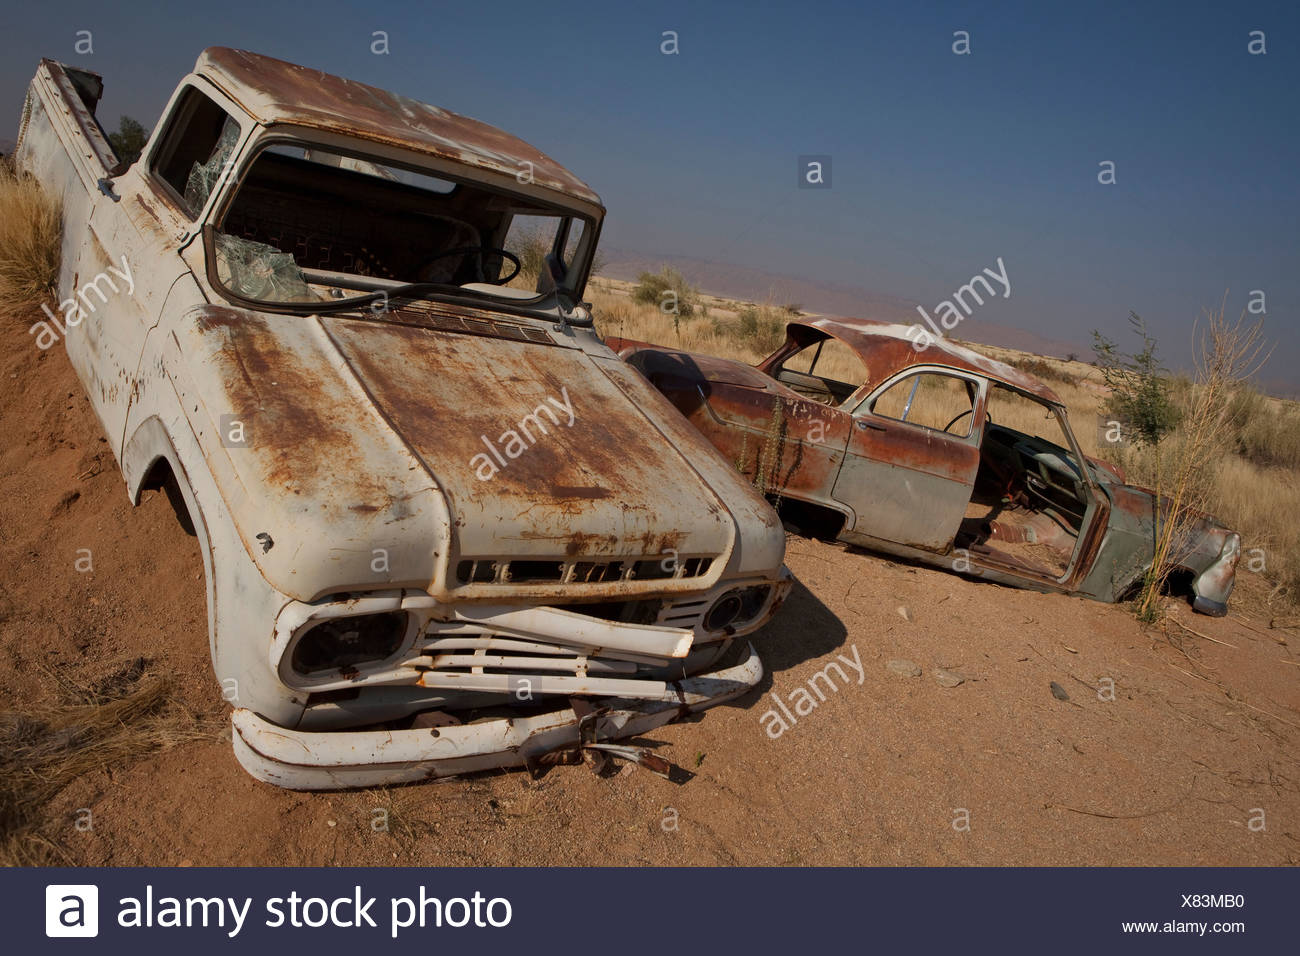 Rusting cars submerged in sand - Stock Image